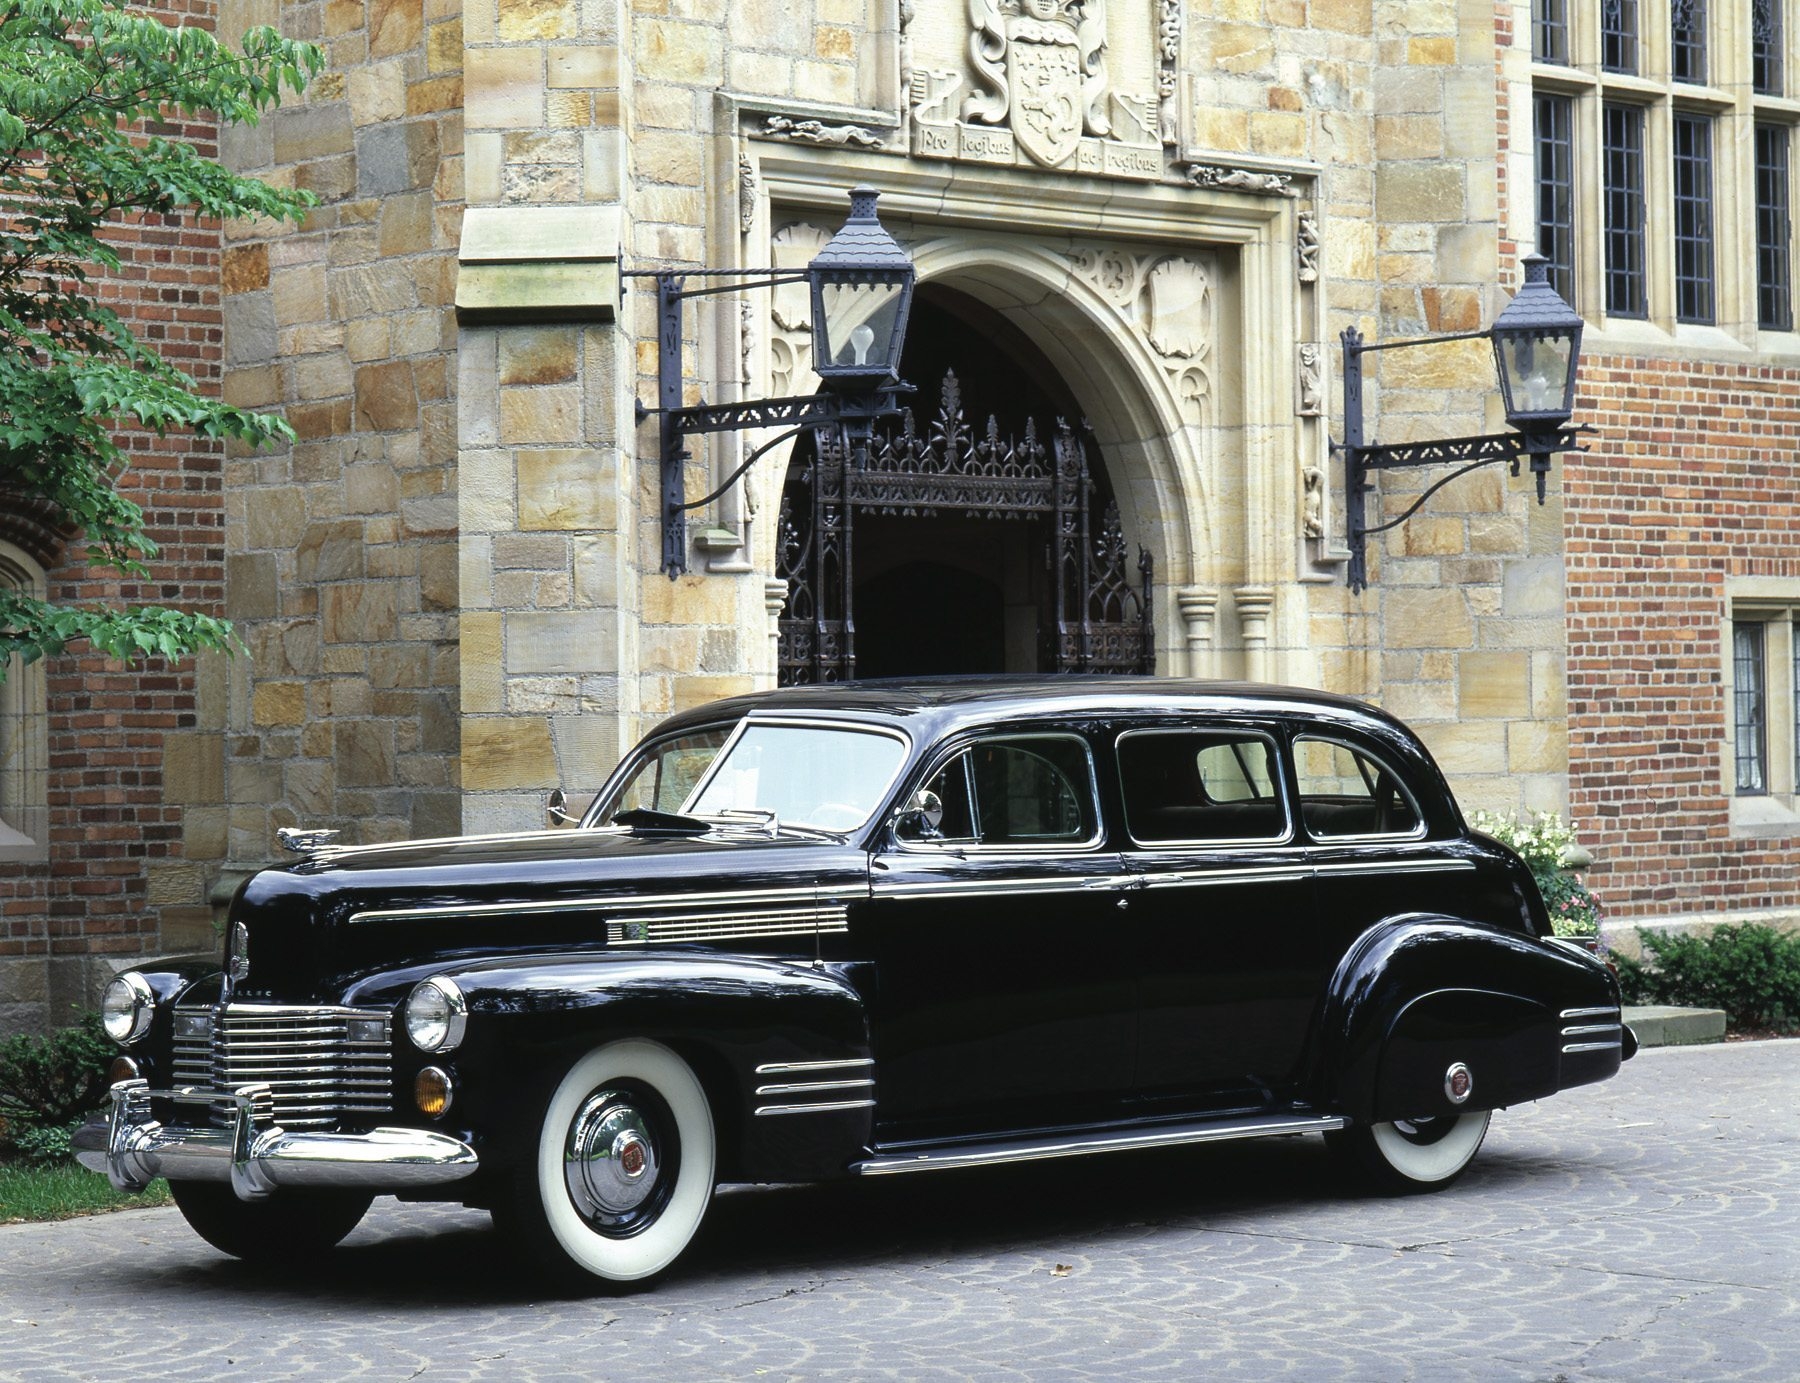 1941-cadillacs-series-75-7-passenger-touring-sedan